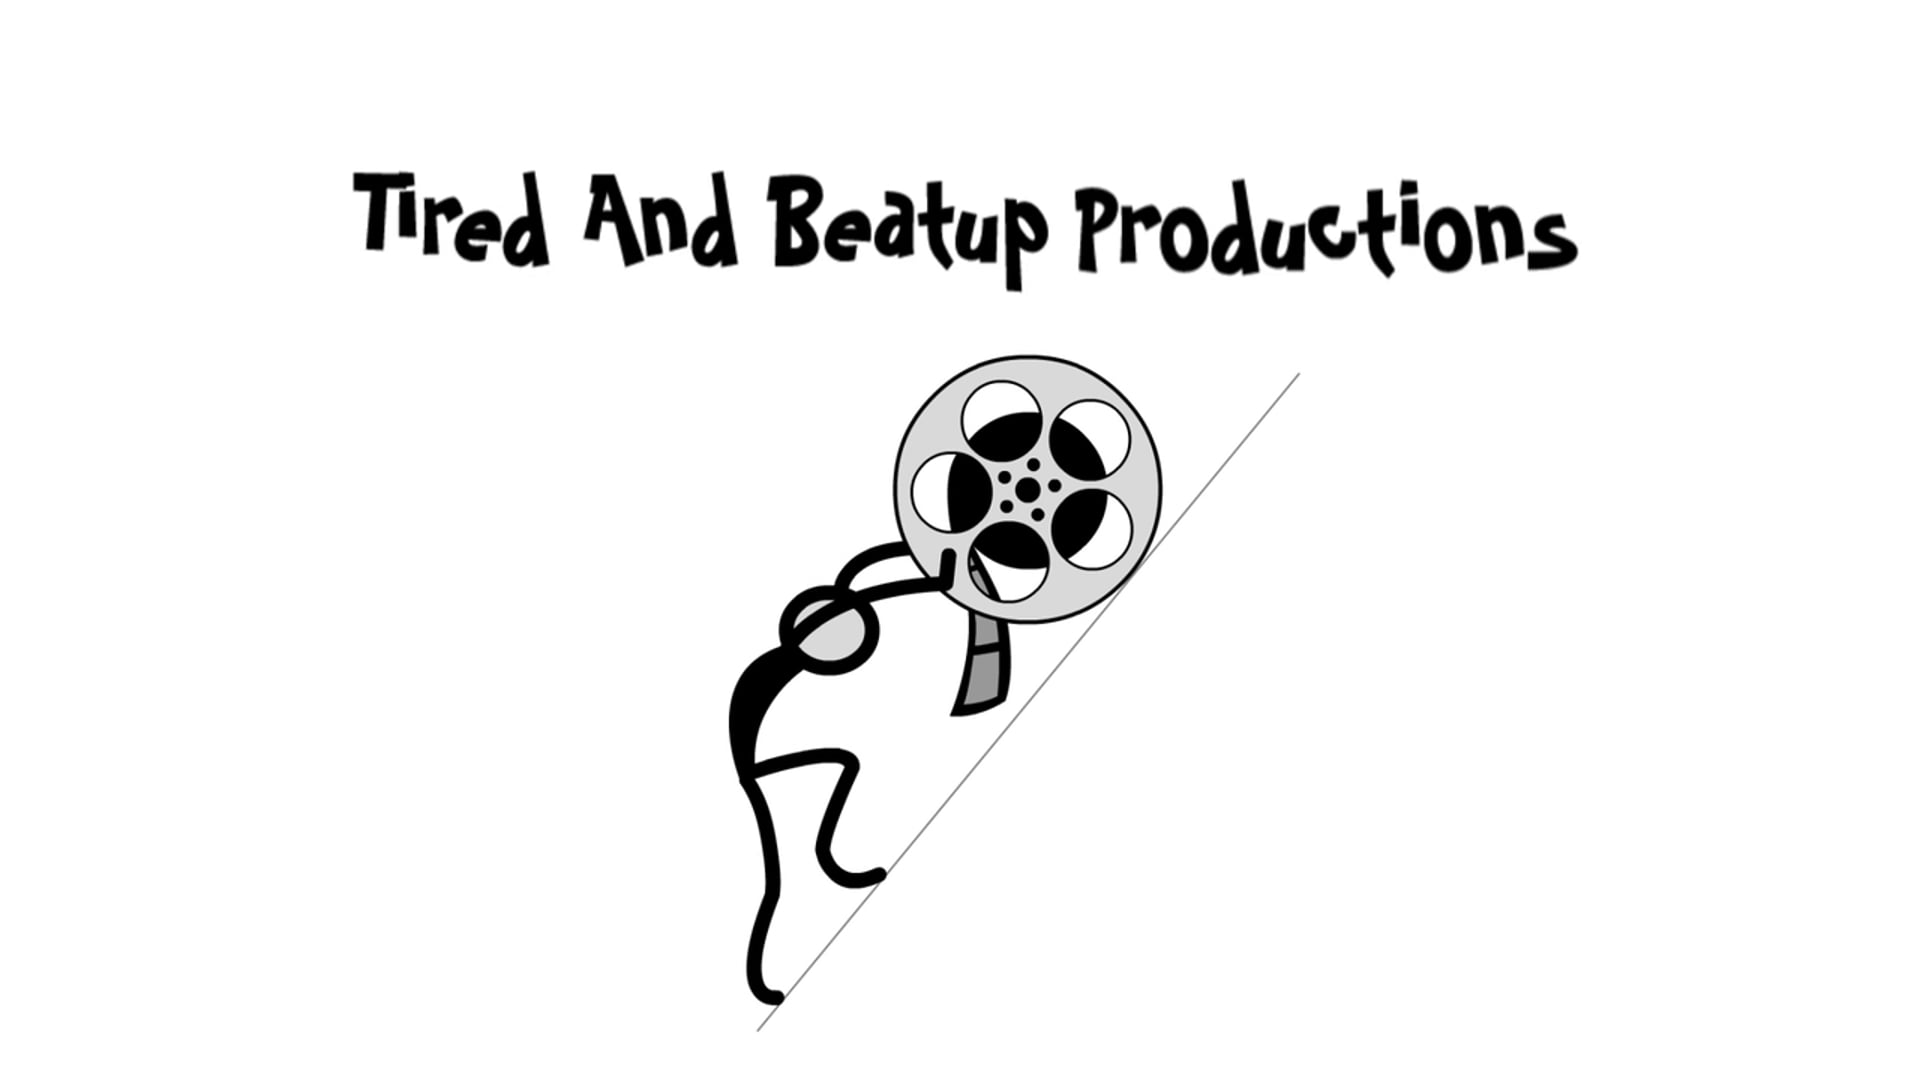 Tired and Beatup Productions